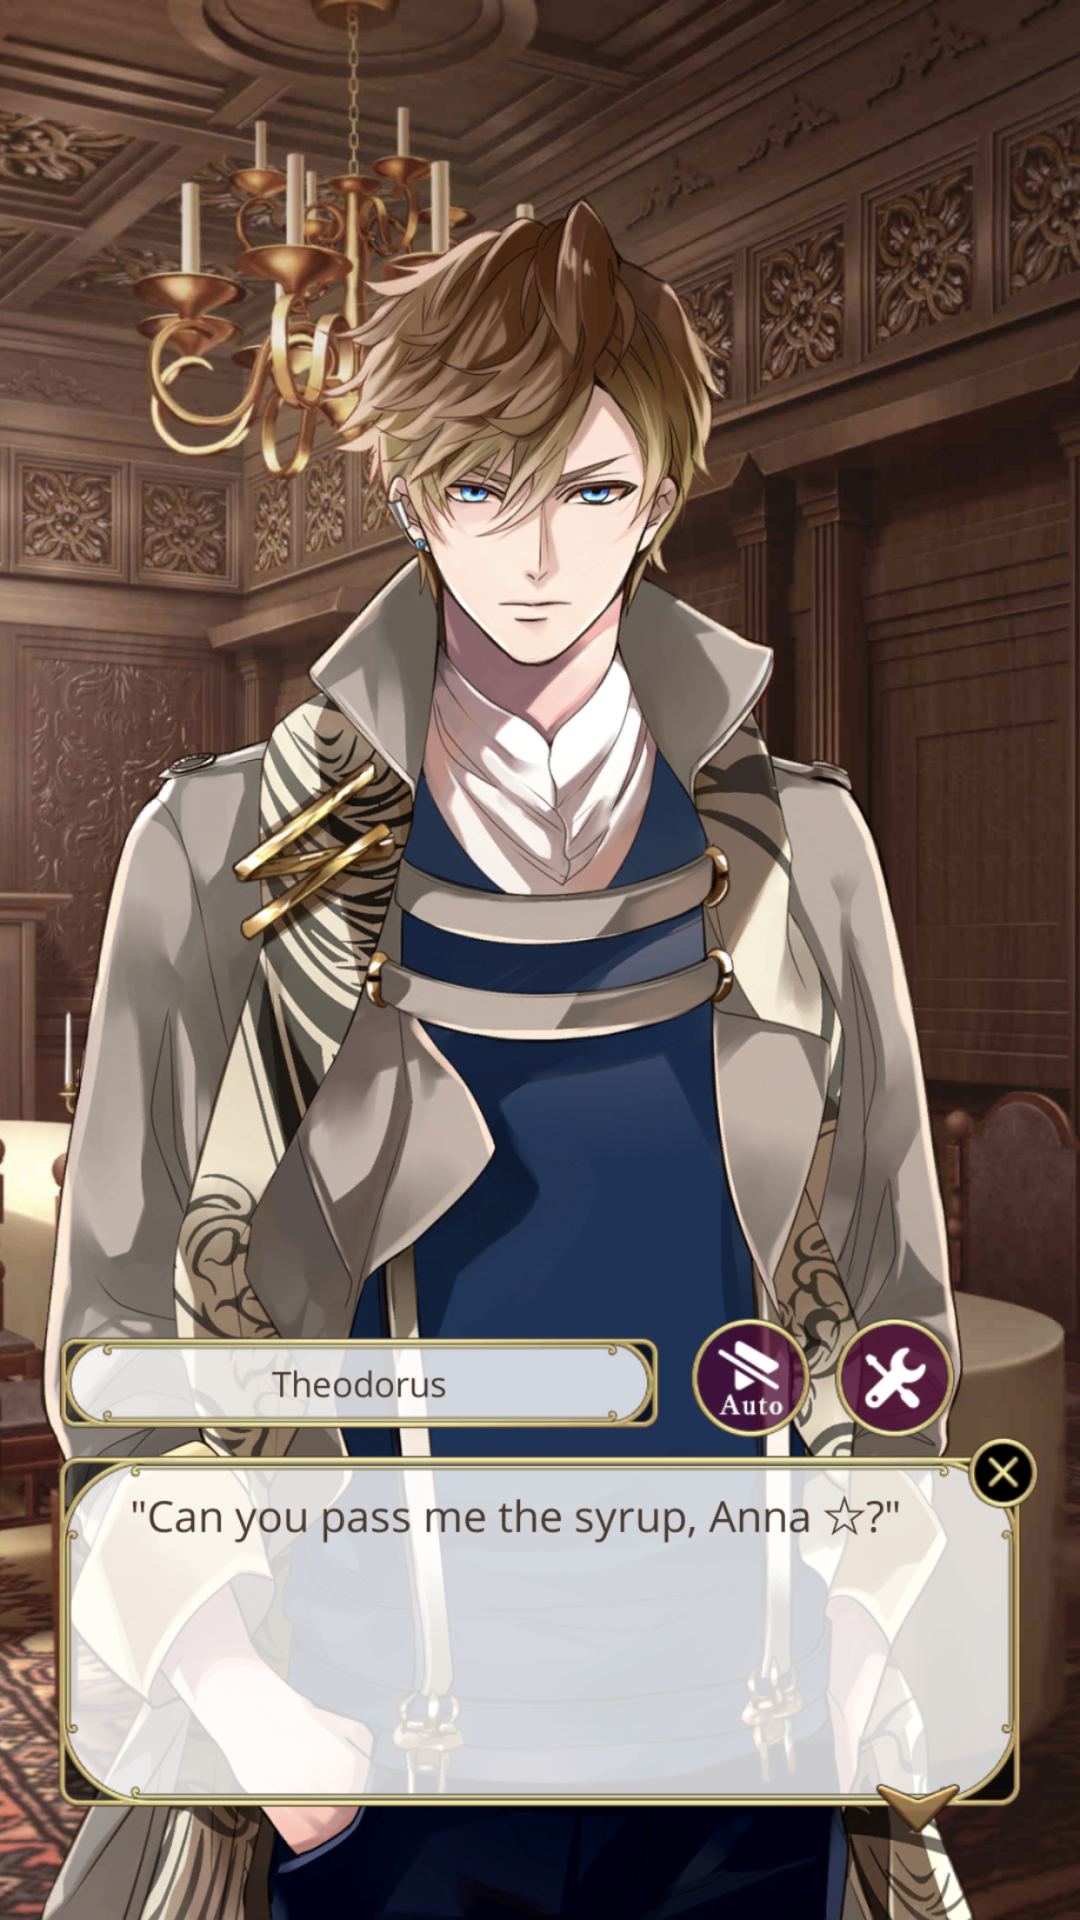 look at arthur eyeing them. someone's feeling things! (≖‿≖)✧ #ikemen vampire#ikevam#theos route #theodorus van gogh  #arthur conan doyle #isaac newton #leonardo da vinci #crispyapple screencaps